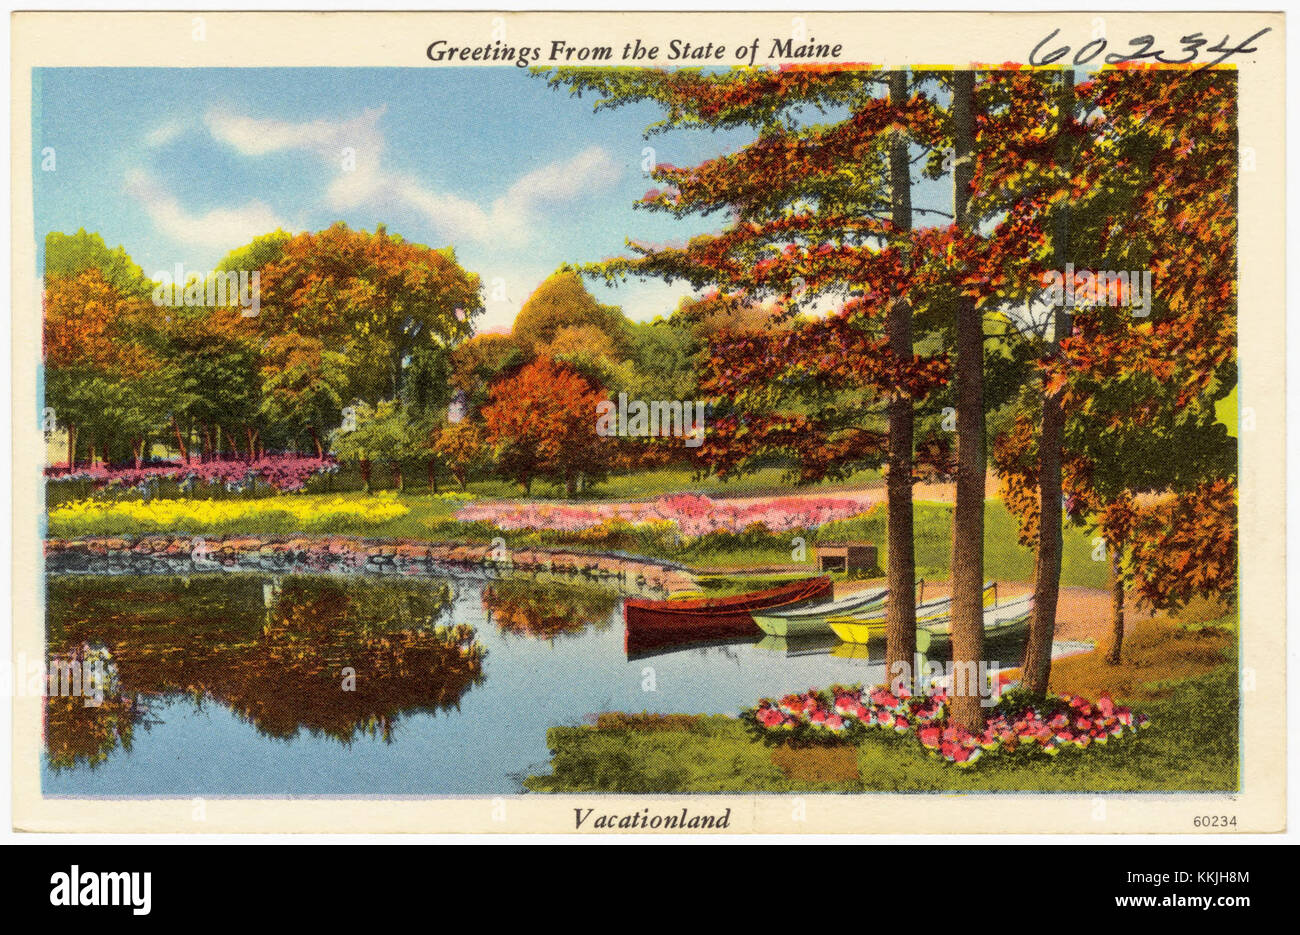 Greetings from the State of Maine, Vacationland (60234) - Stock Image